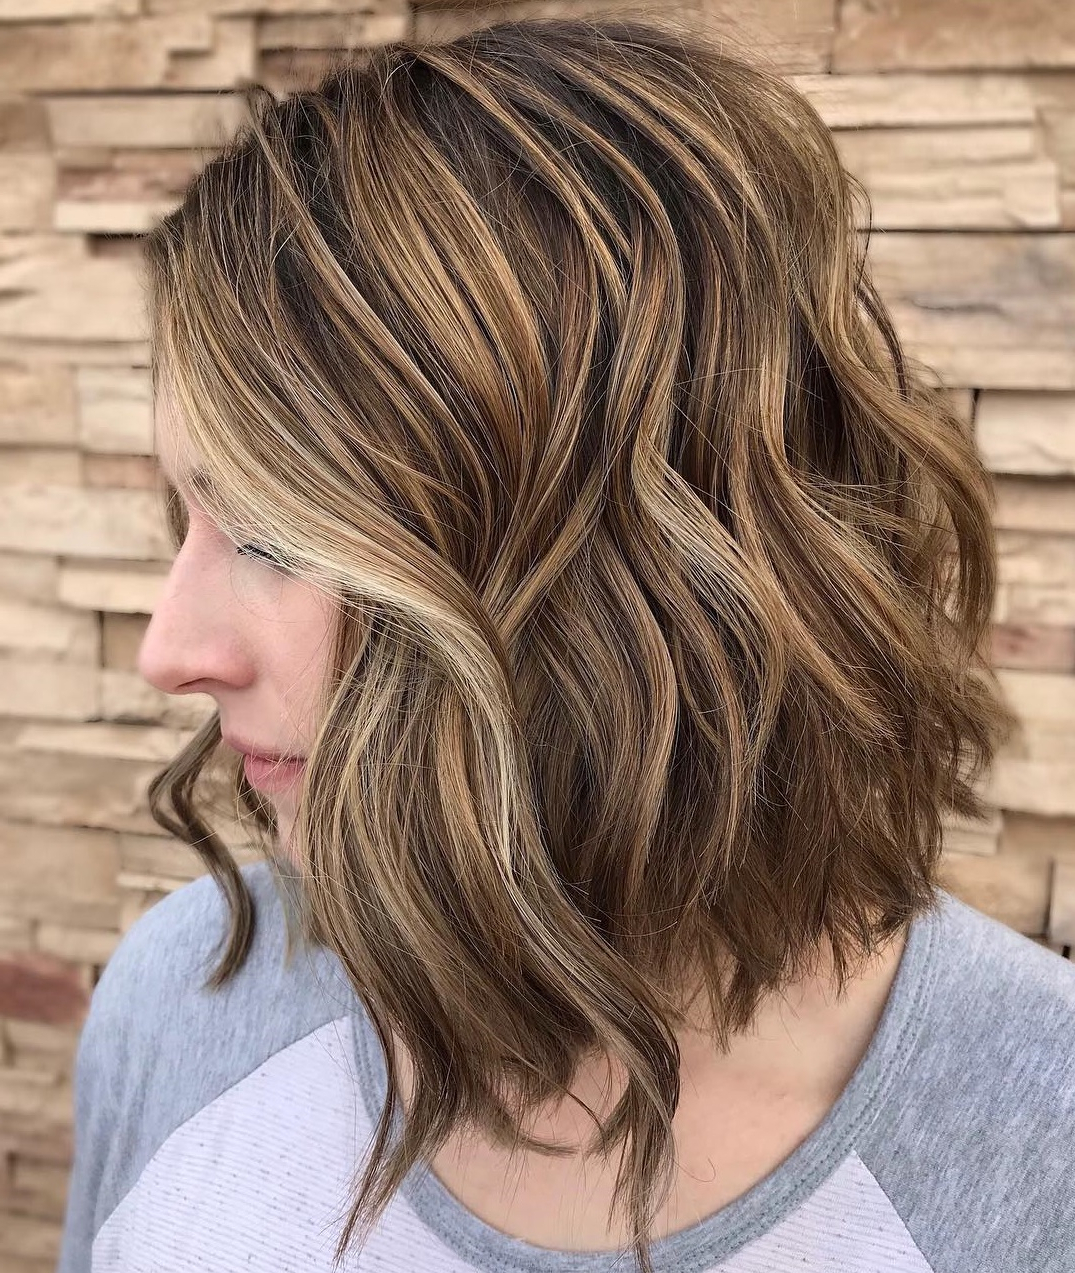 How To Pull Off Medium Length Haircuts And Hairstyles In 2019 Throughout Most Current Medium Copper Brown Shag Haircuts For Thick Hair (View 13 of 20)